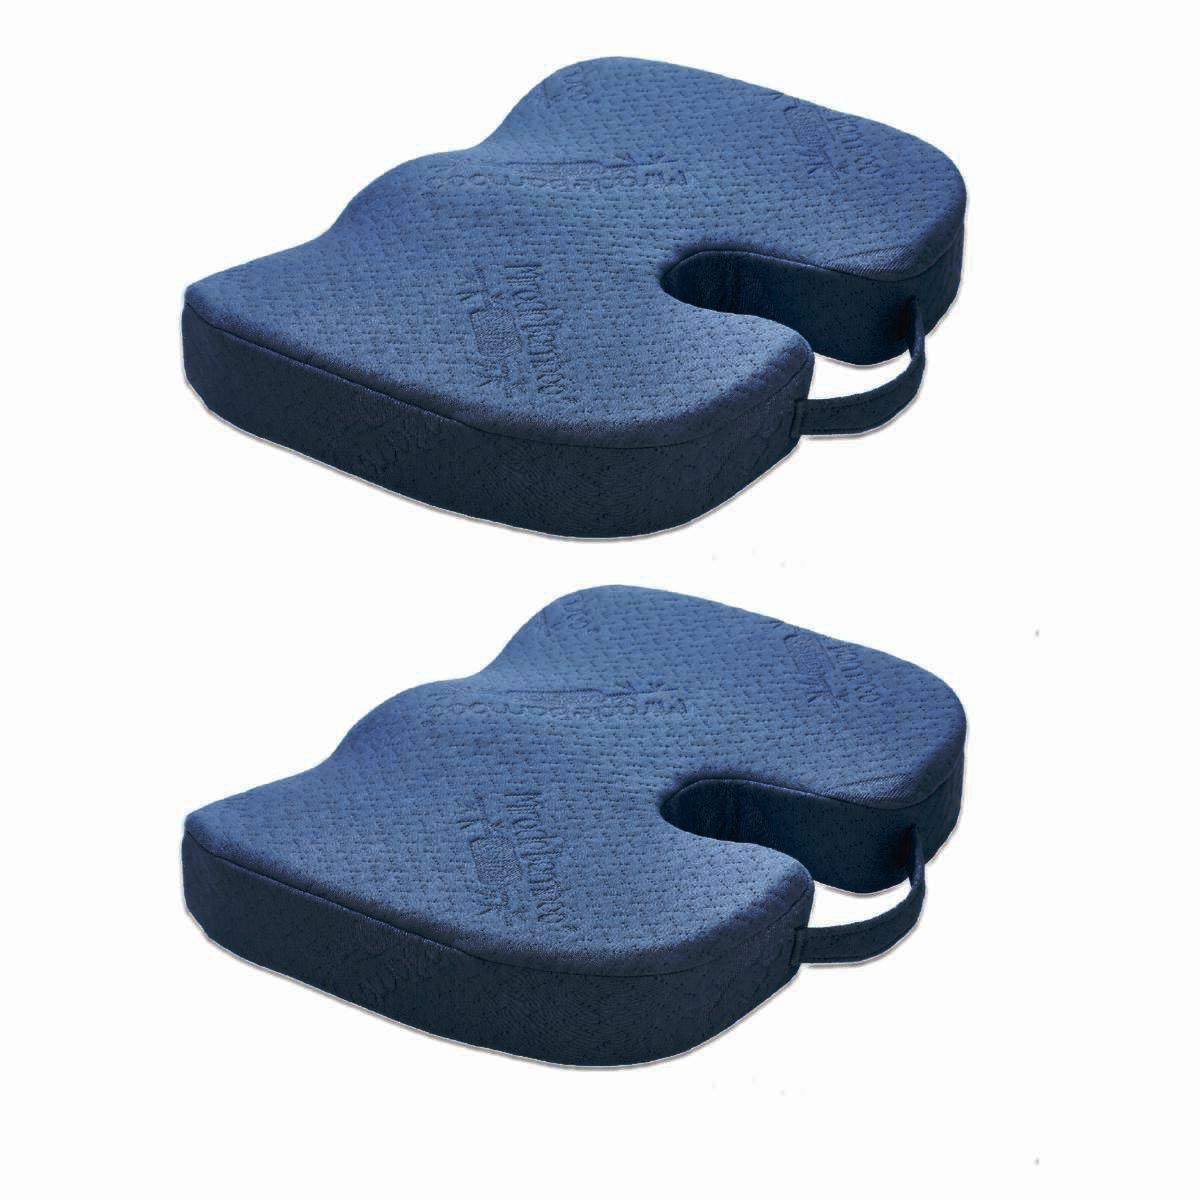 As Seen On TV Miracle Bamboo Cushion Deluxe Navy Blue Pack of 2